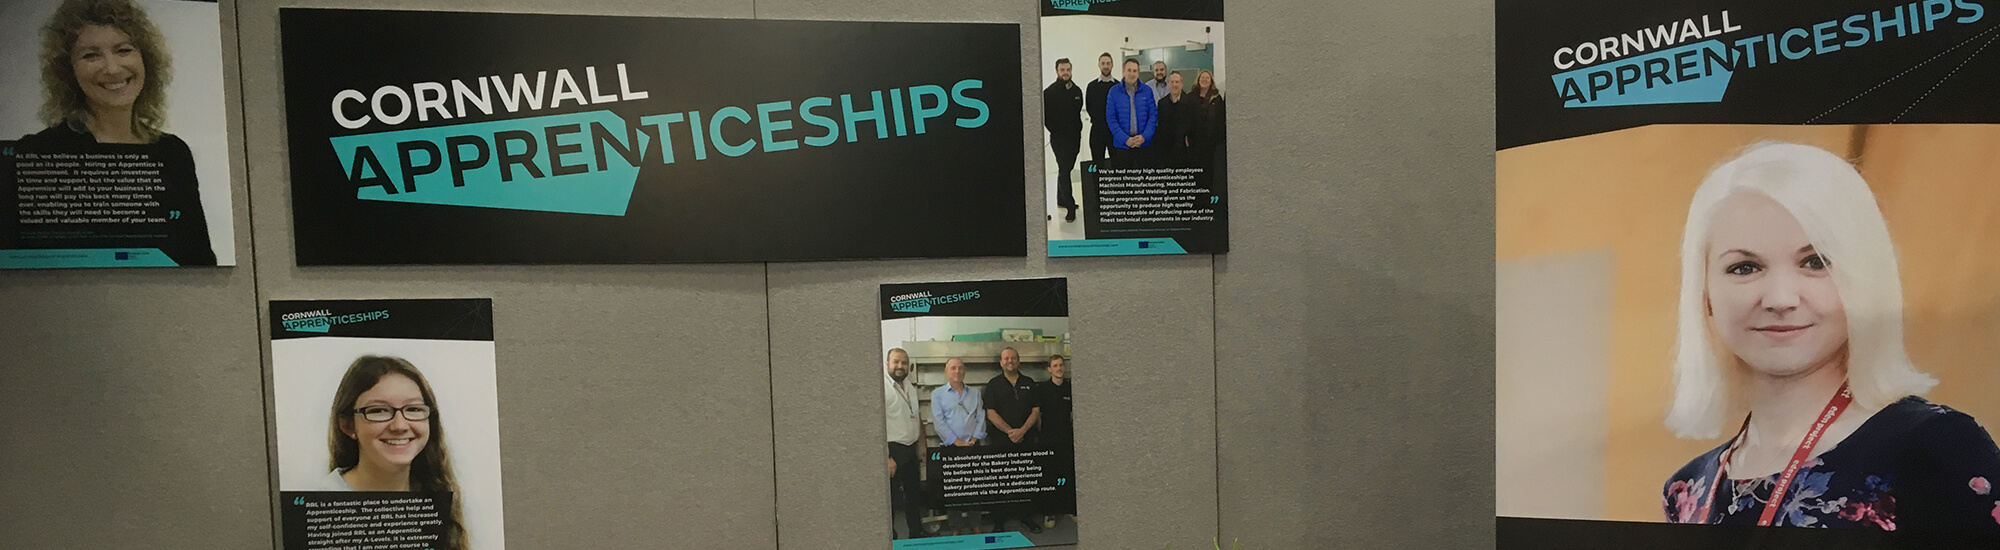 about corwanll apprenticeships - About Us